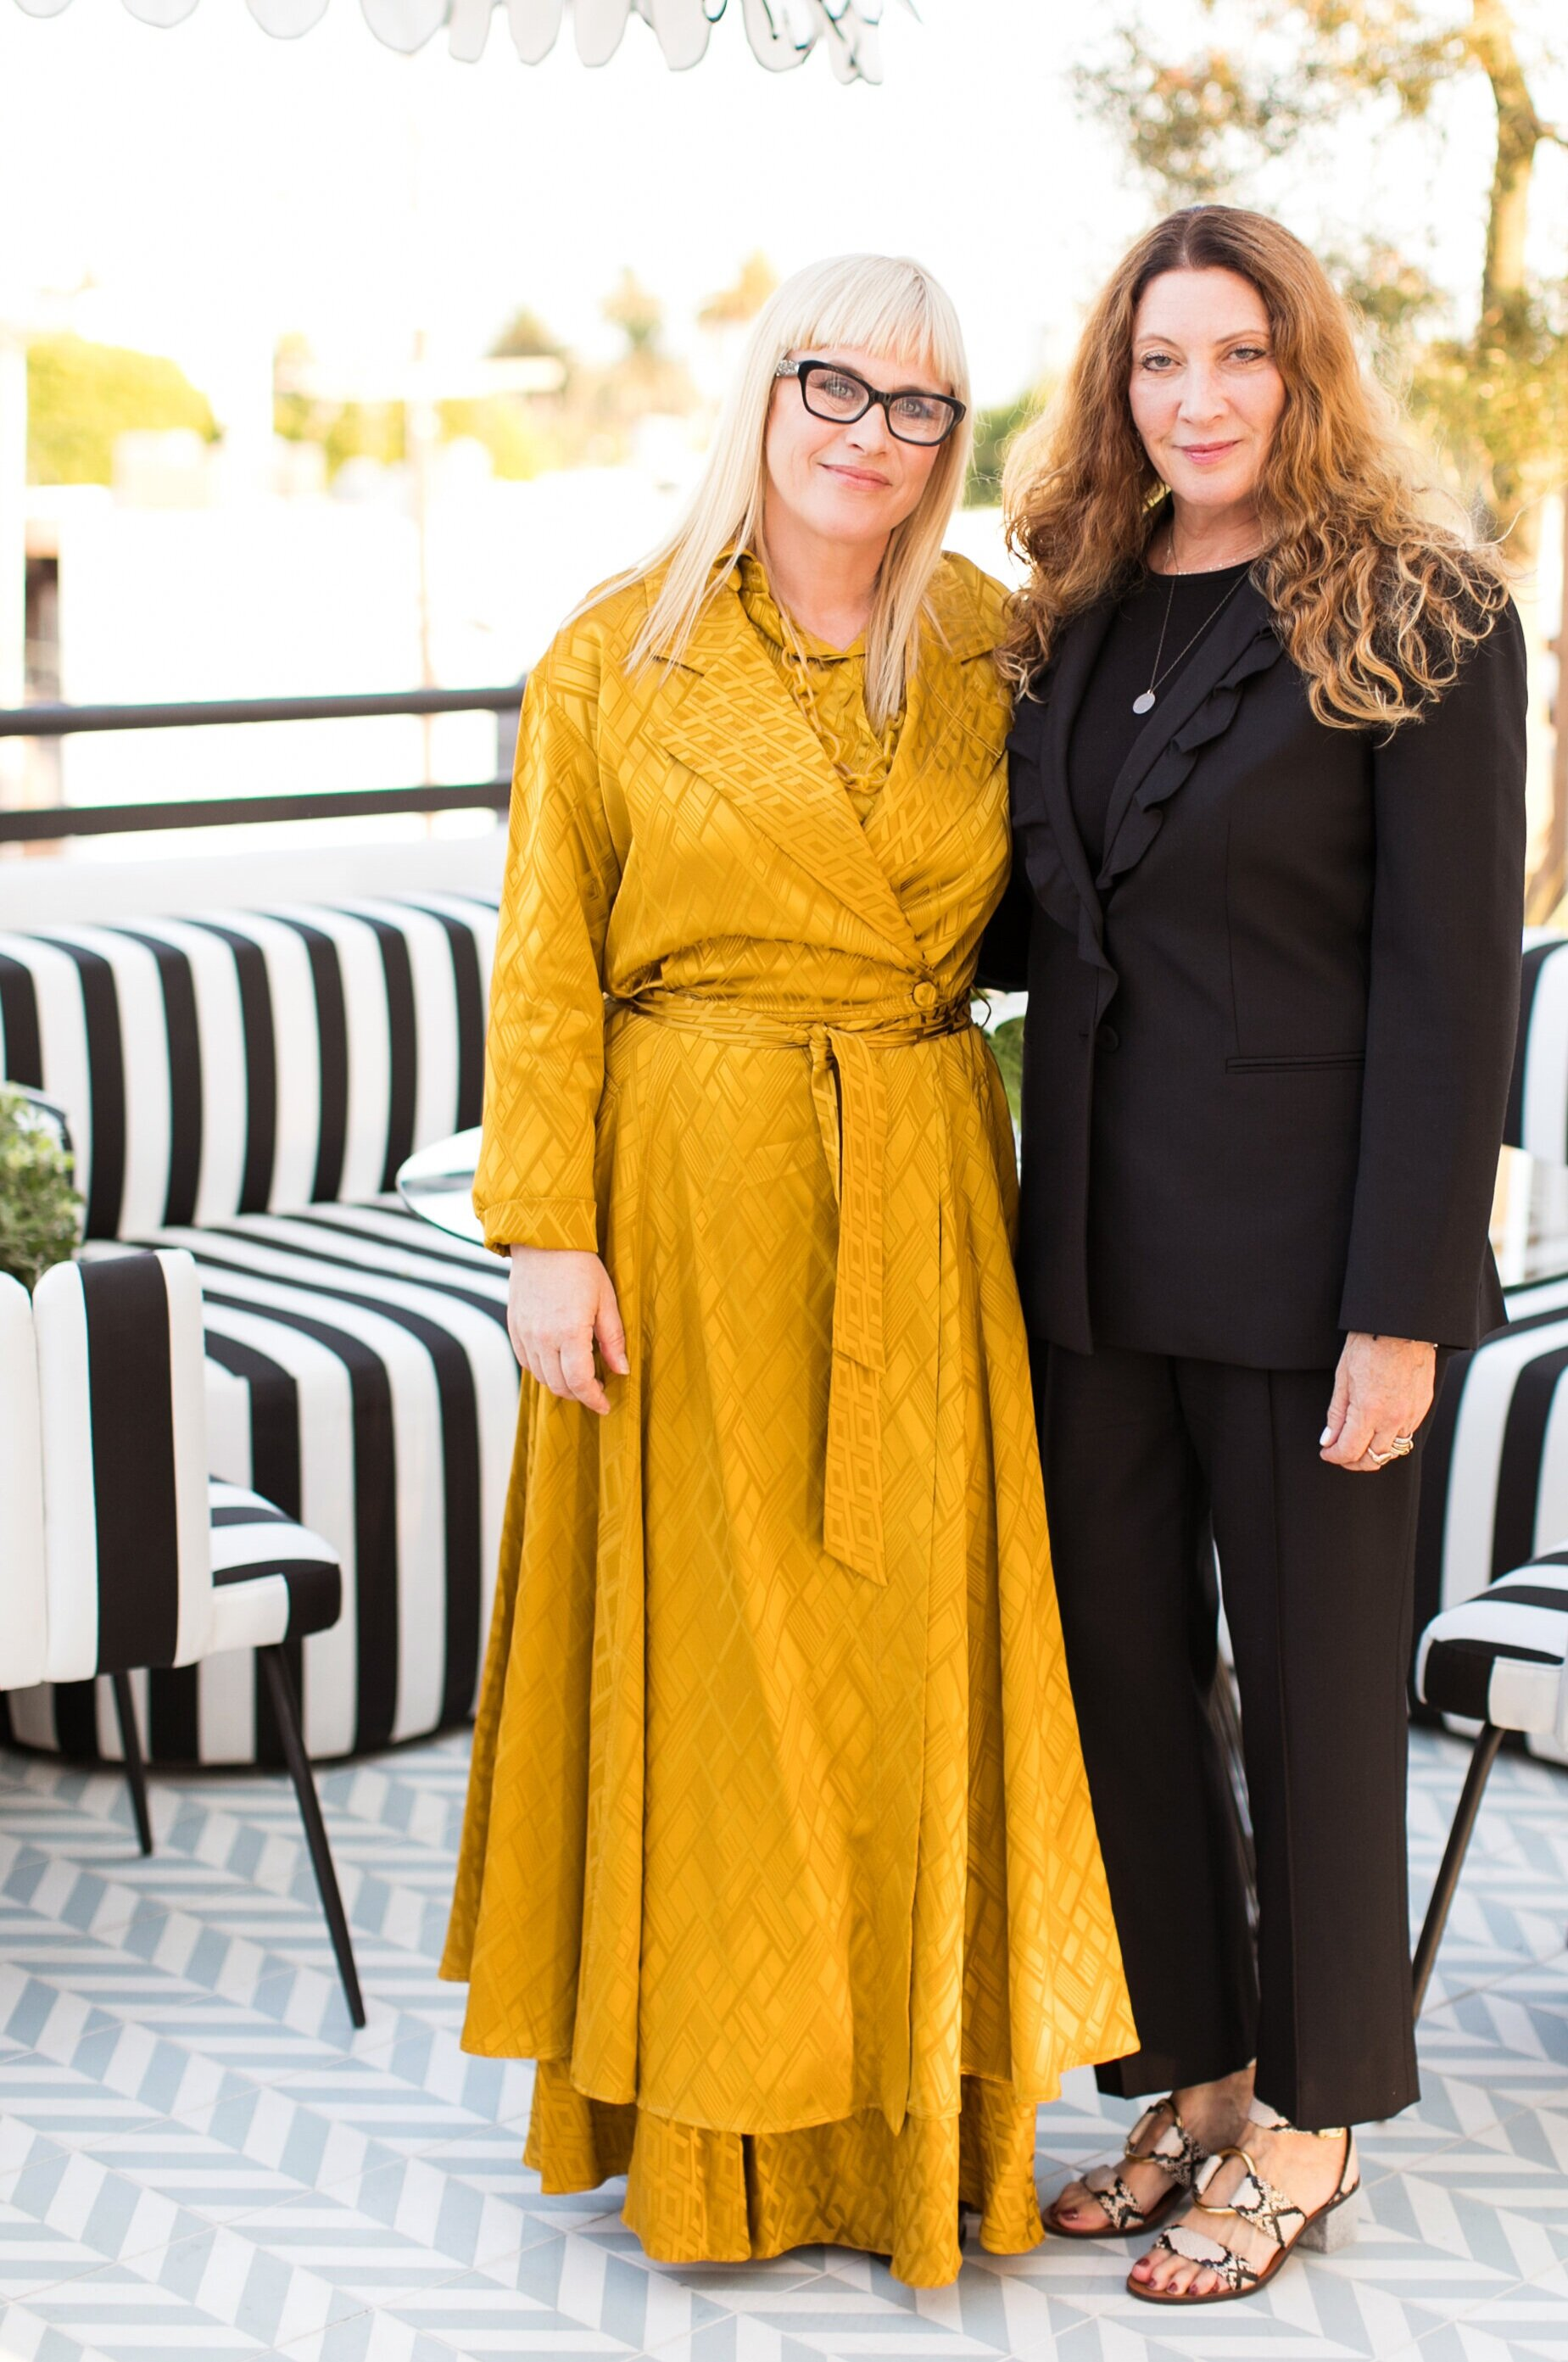 Patricia Arquette and Suzanne Lerner at the AllBright Collective in West Hollywood.  Photo credit: Marissa Maharaj